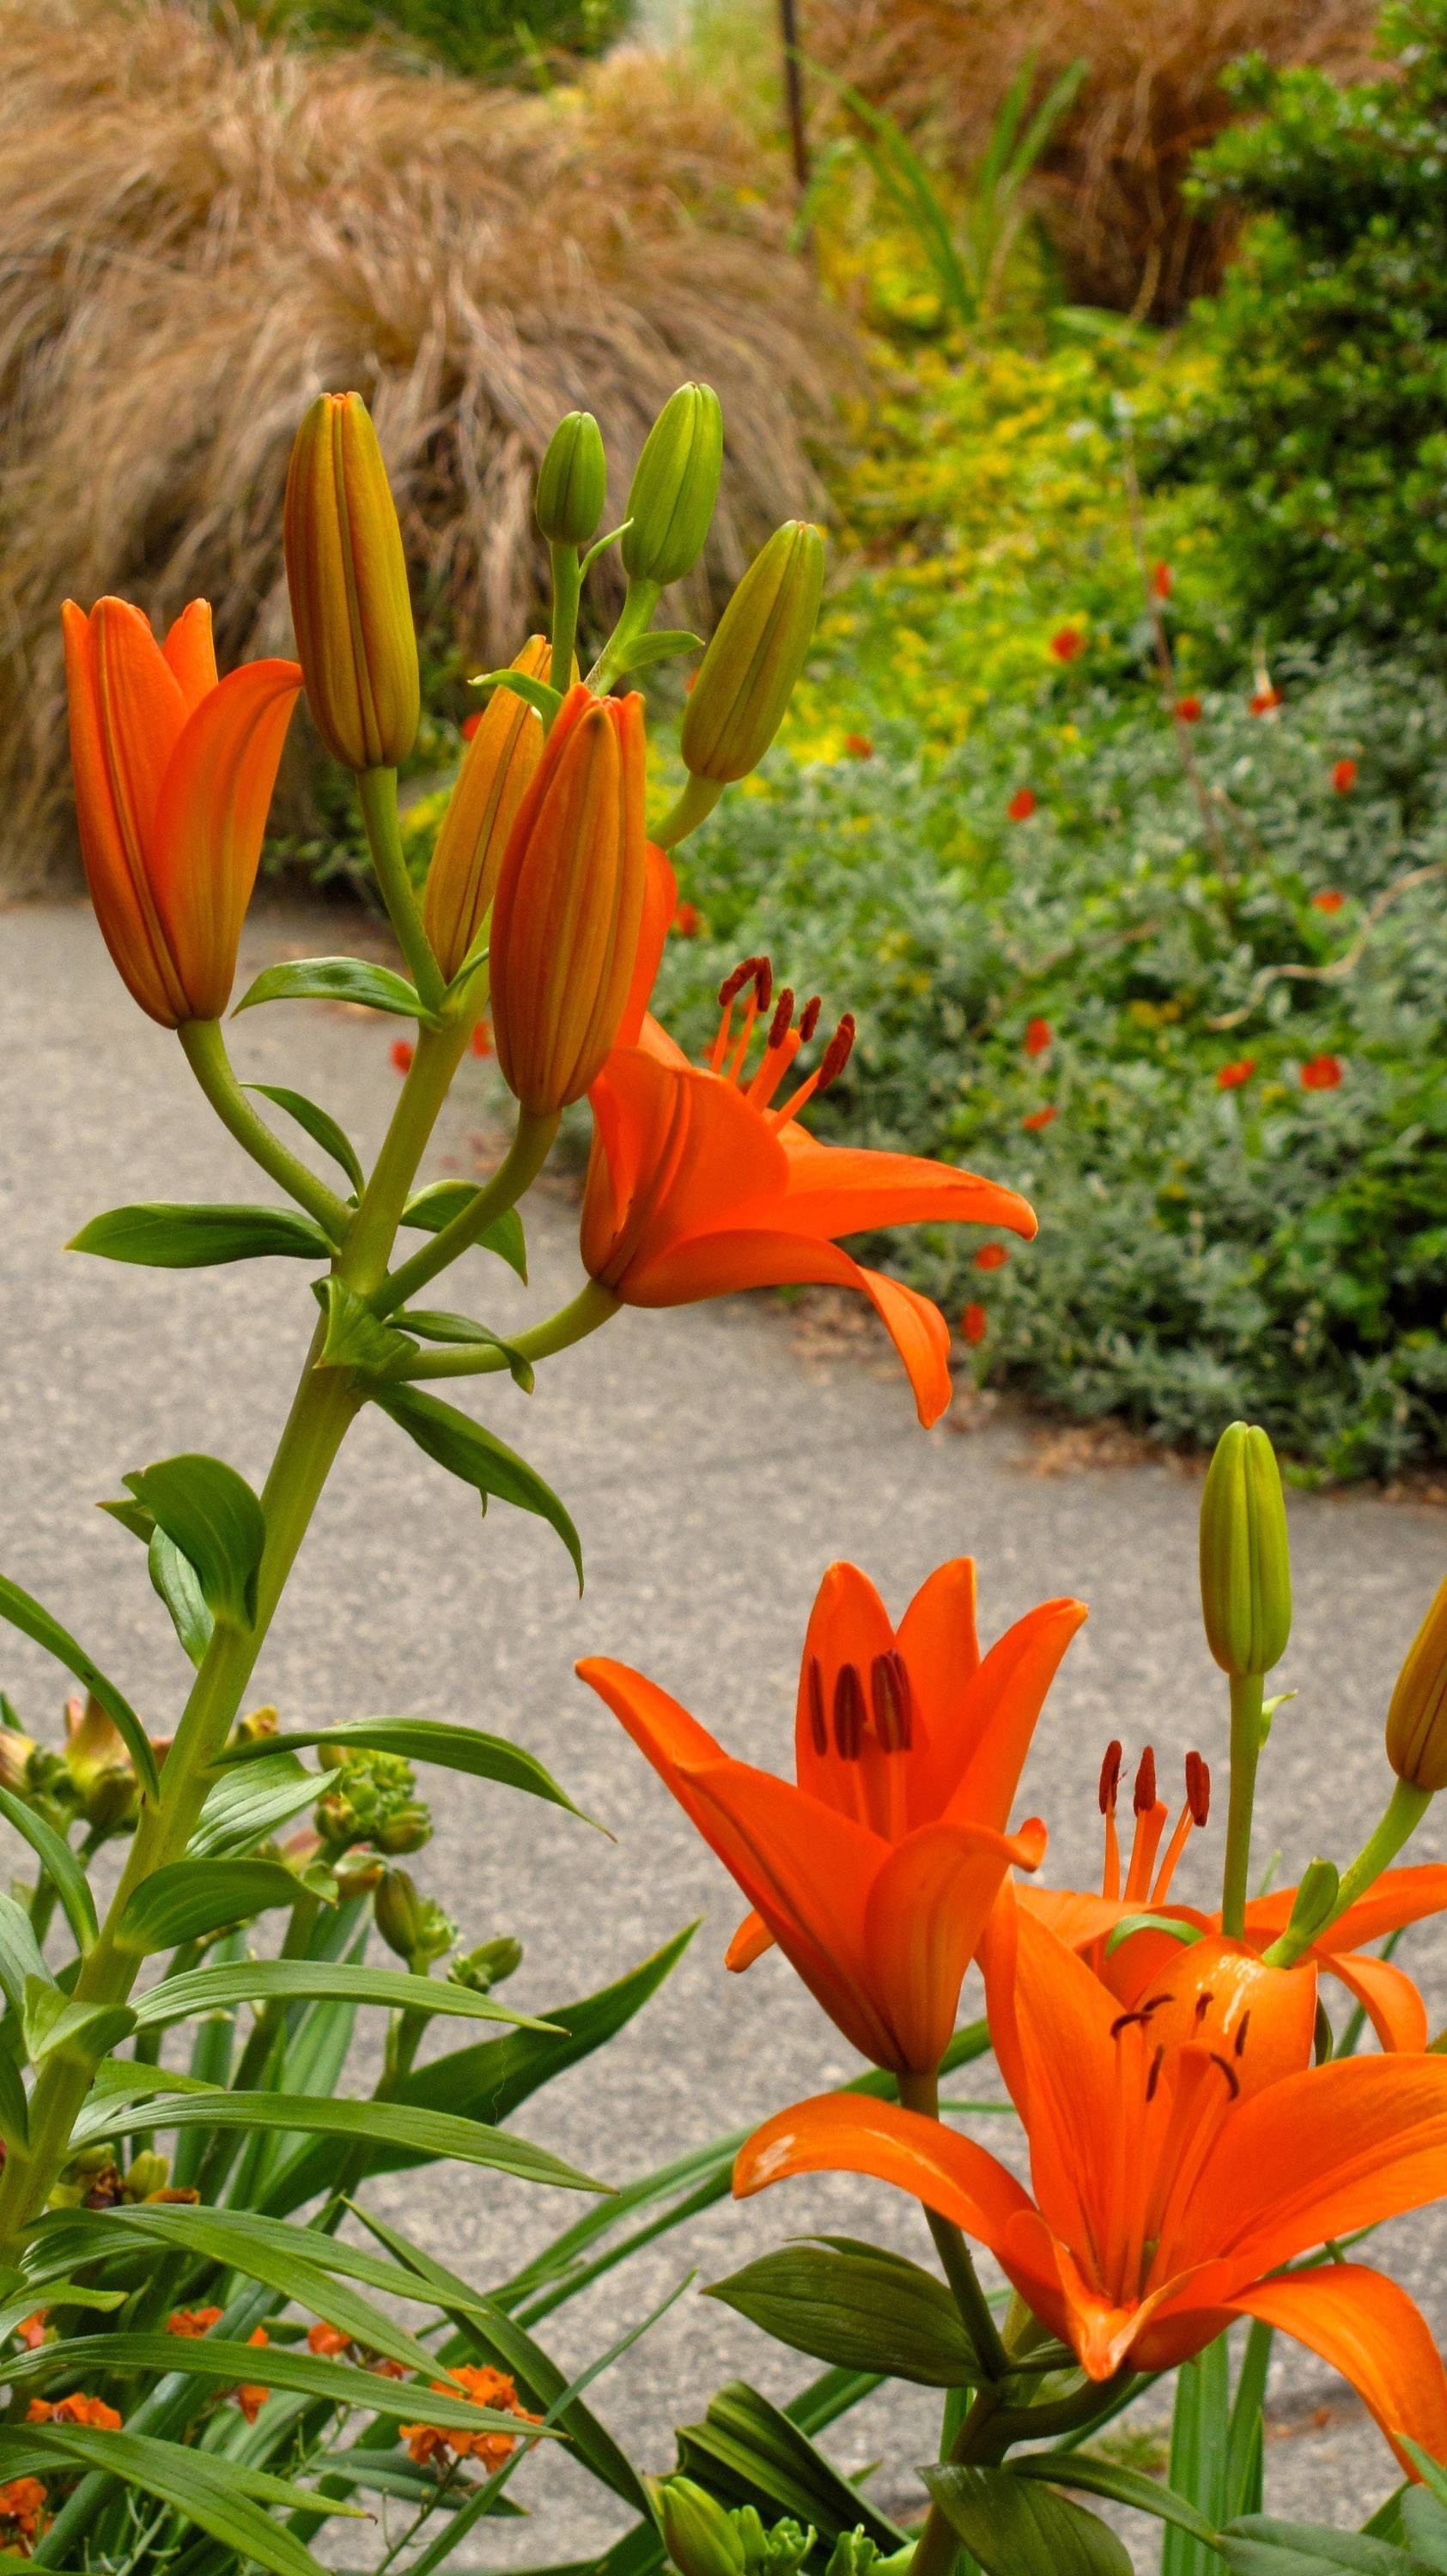 In this curbside garden, a gardener uses perennials to soften the look of the narrow area between sidewalk and street. The day lilies and ornamental grasses are attractive, easy to maintain and low enough to the ground that they don't block sight lines.